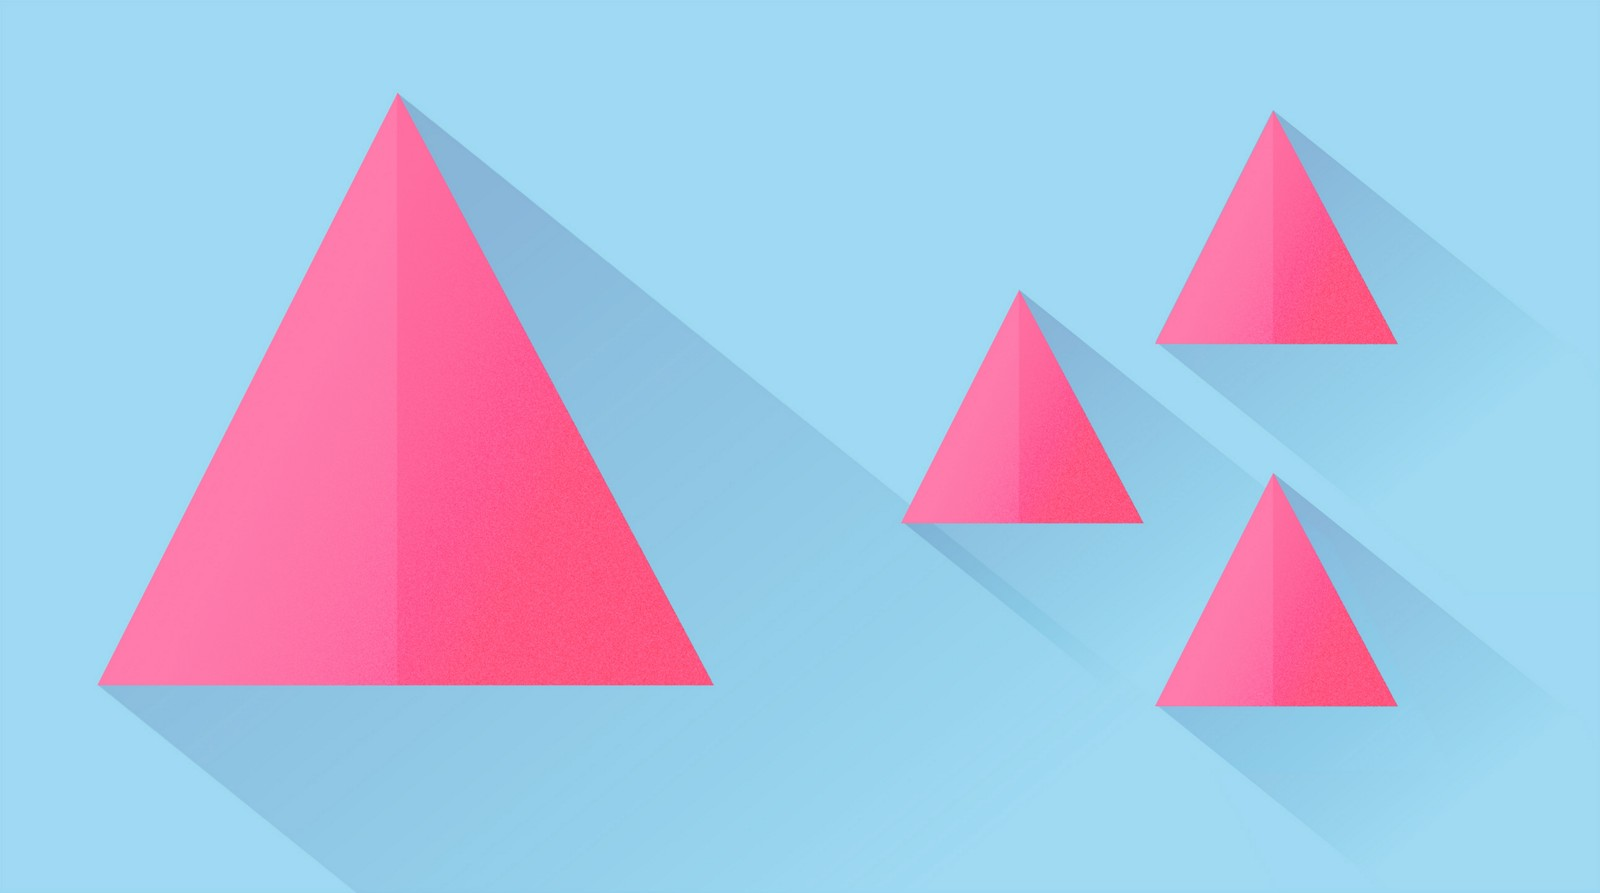 Principles Of Design Shape : Why design principles shape stronger products ux collective